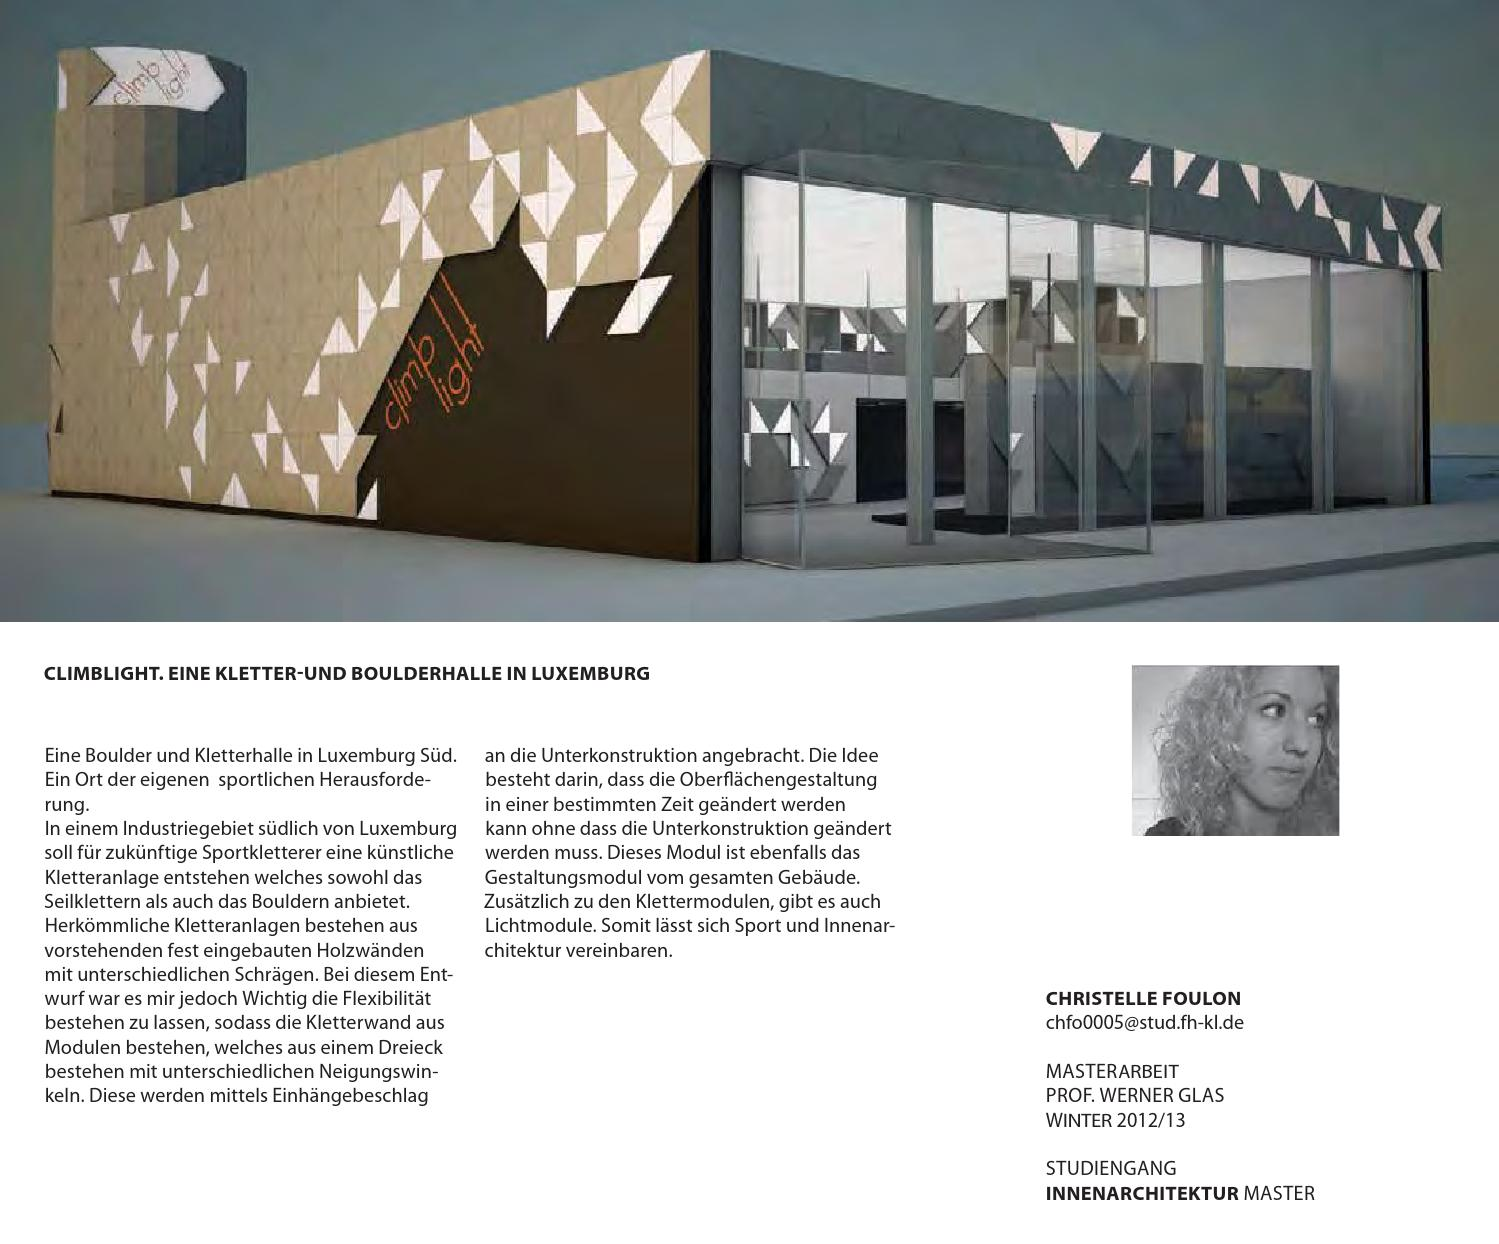 Winter 12 by innenarchitektur kaiserslautern issuu for Innenarchitektur studiengang